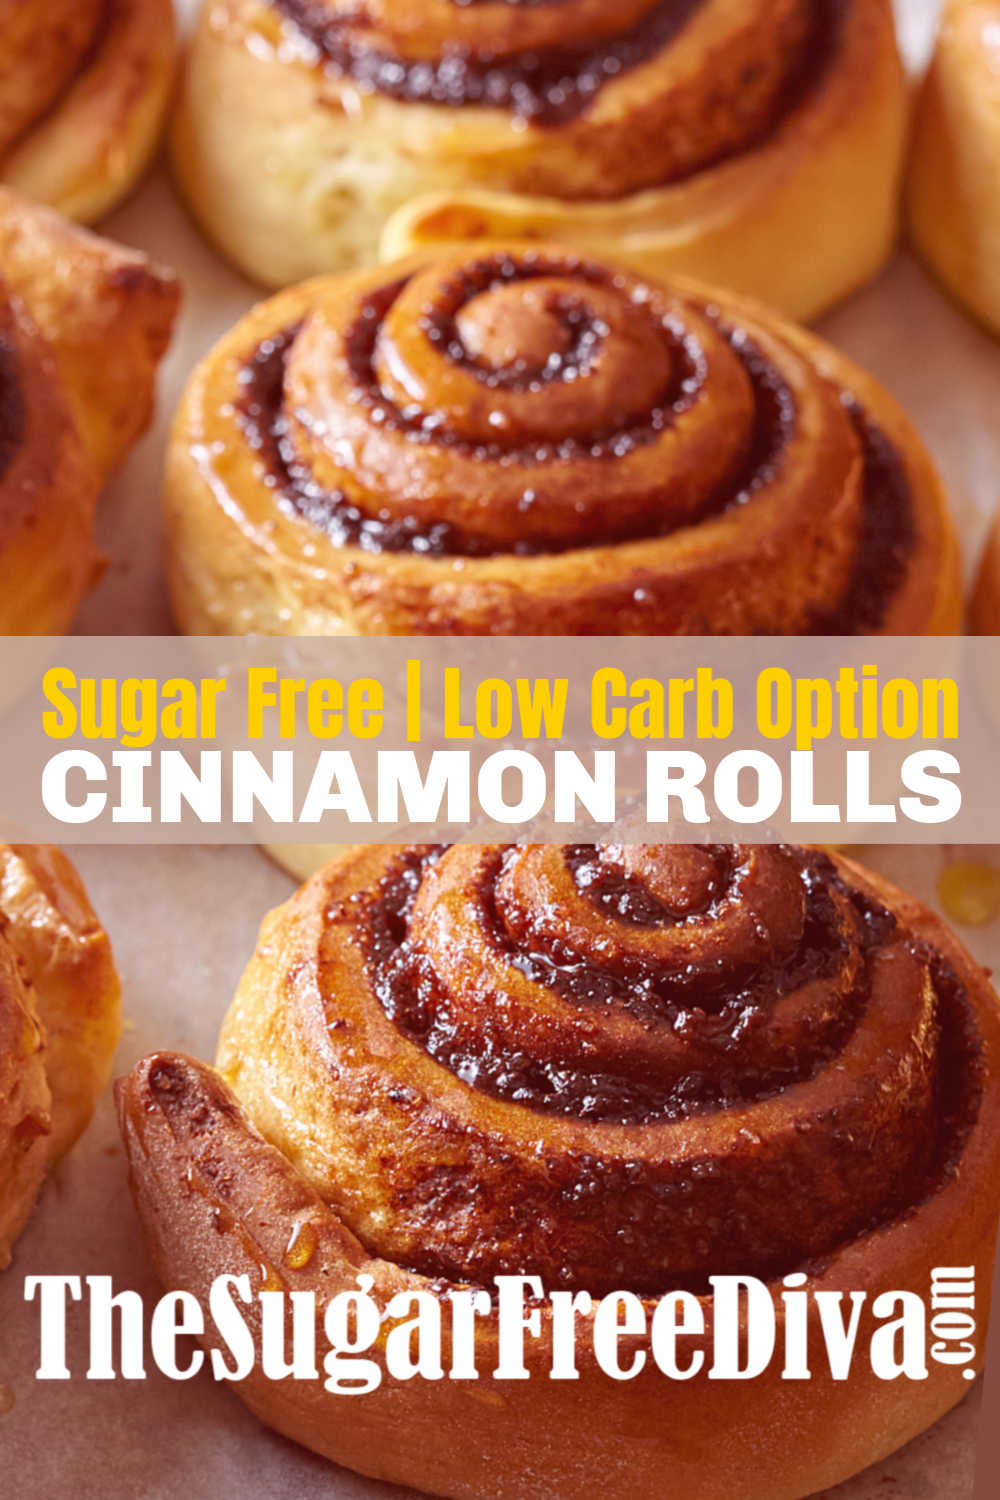 How to make homemade Sugar Free Cinnamon Rolls